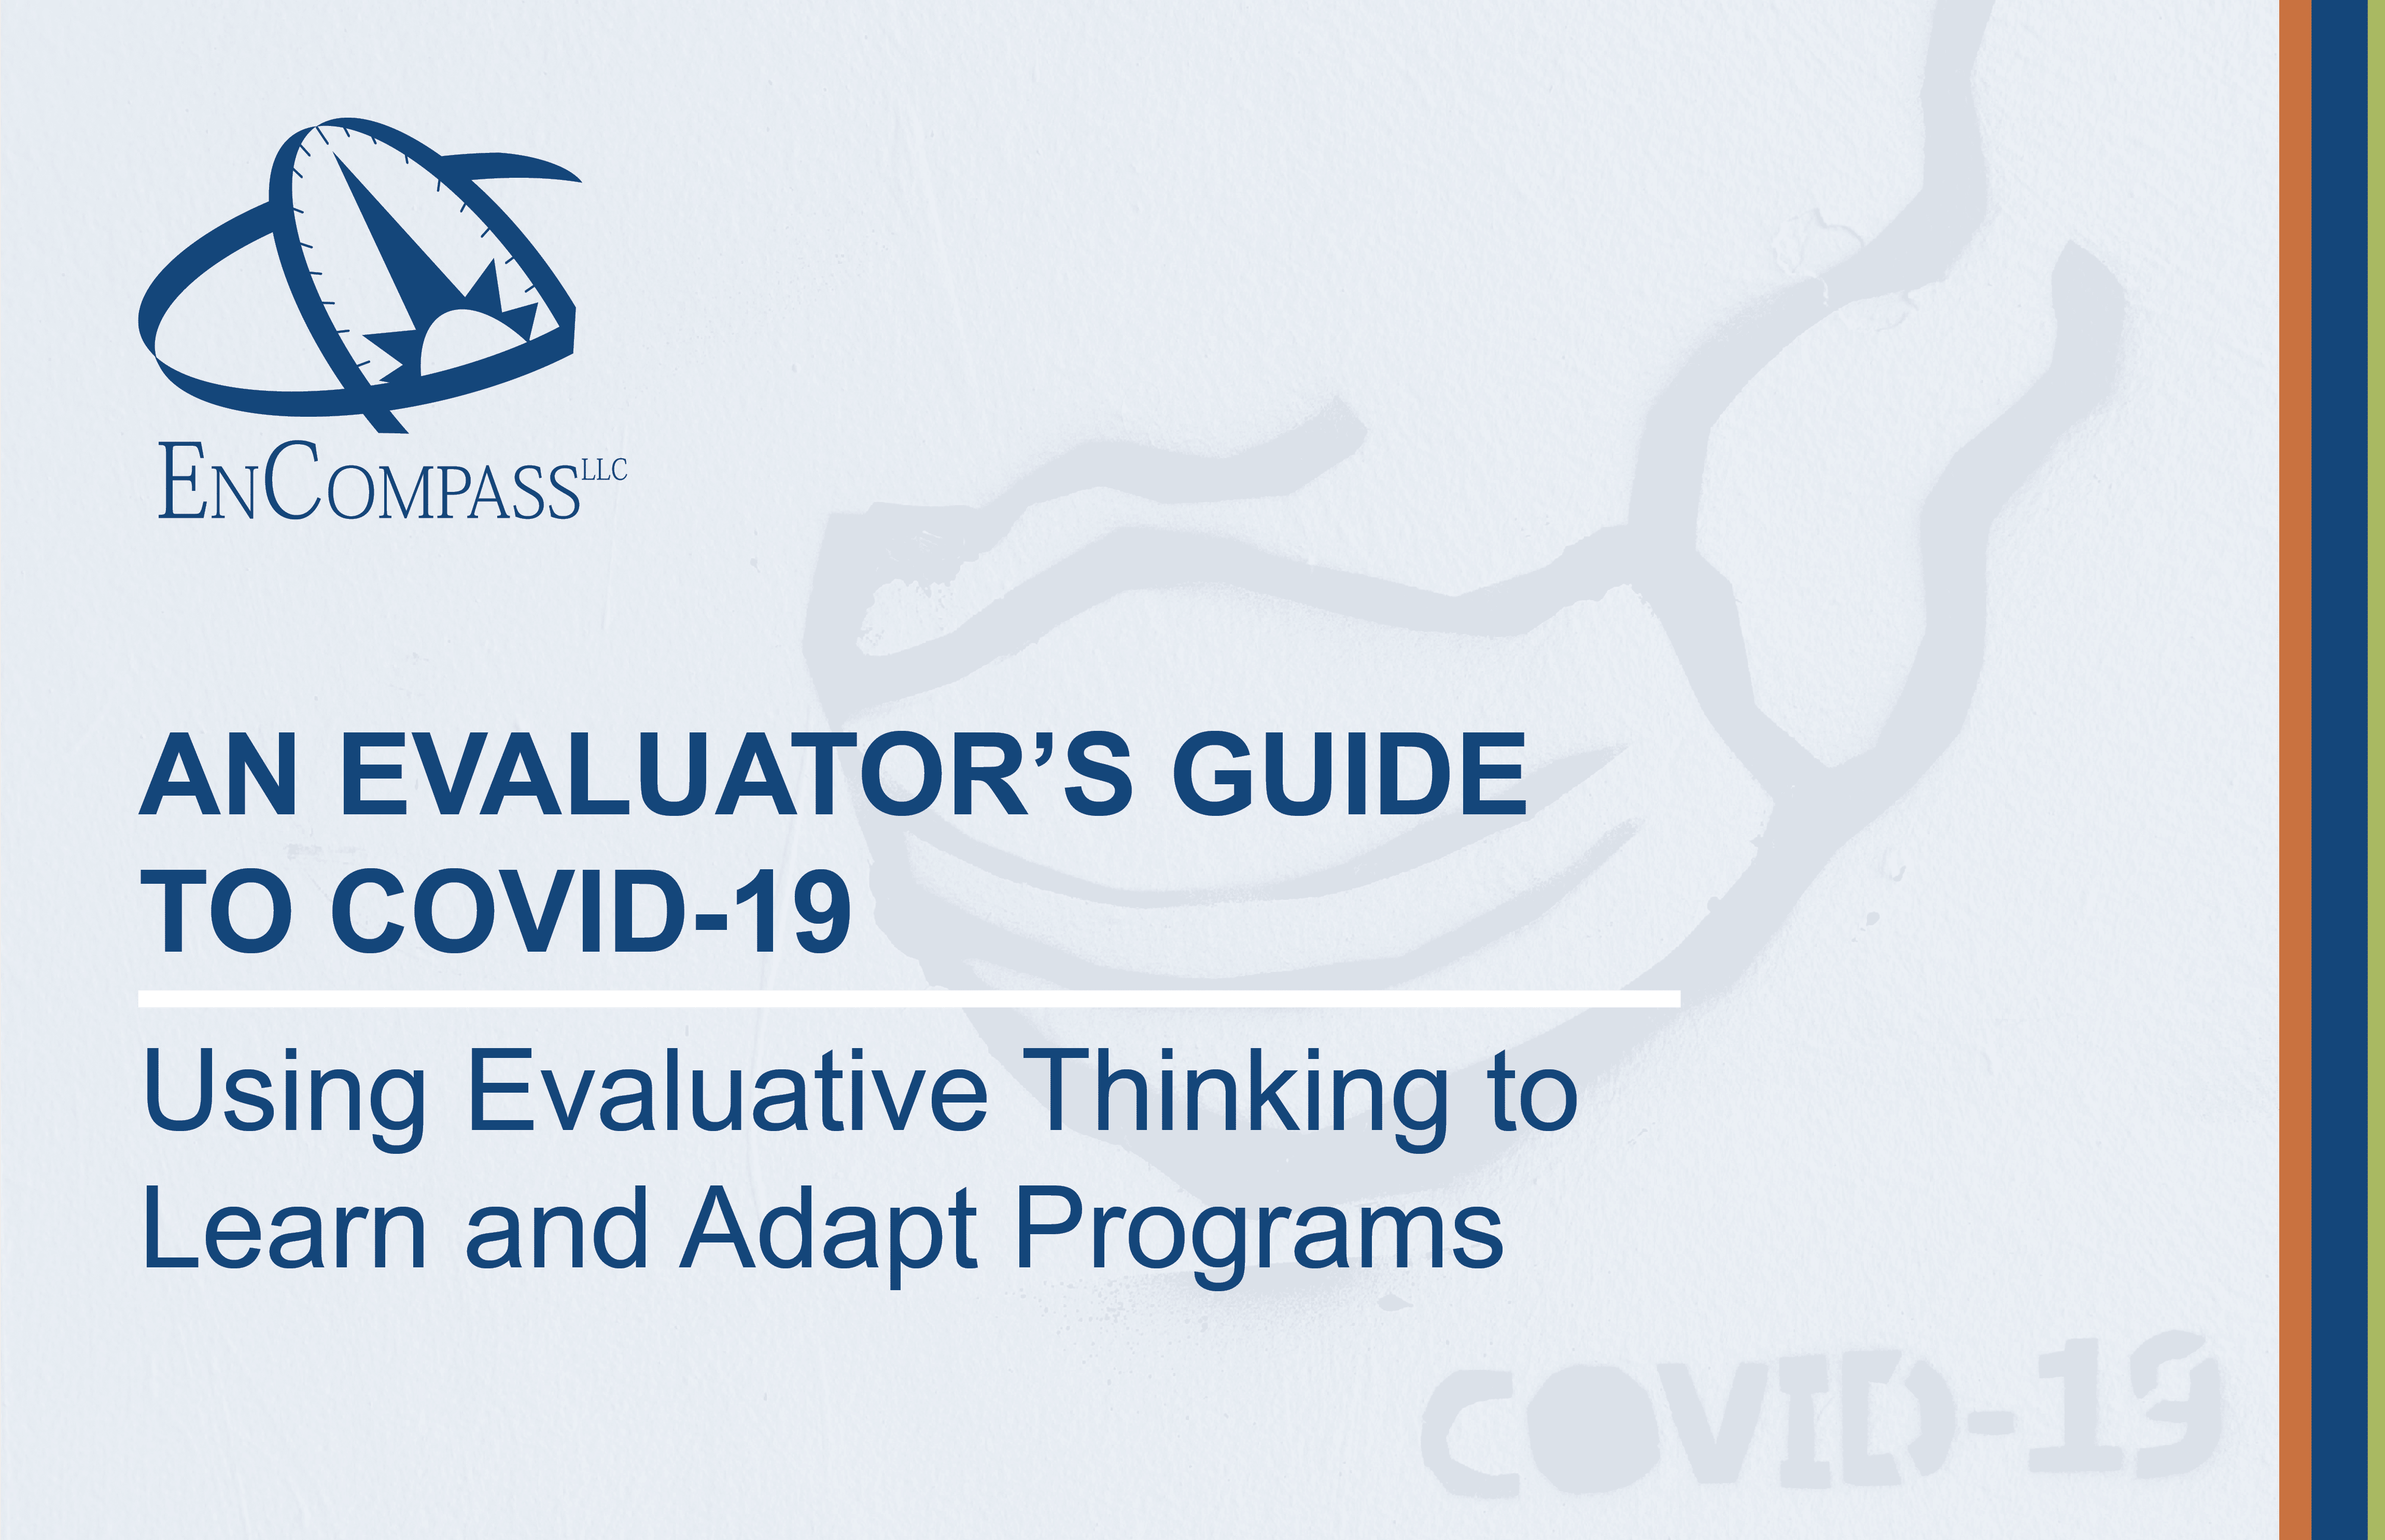 An Evaluator's Guide to COVID-19: Using Evaluative Thinking to Learn and Adapt Programs